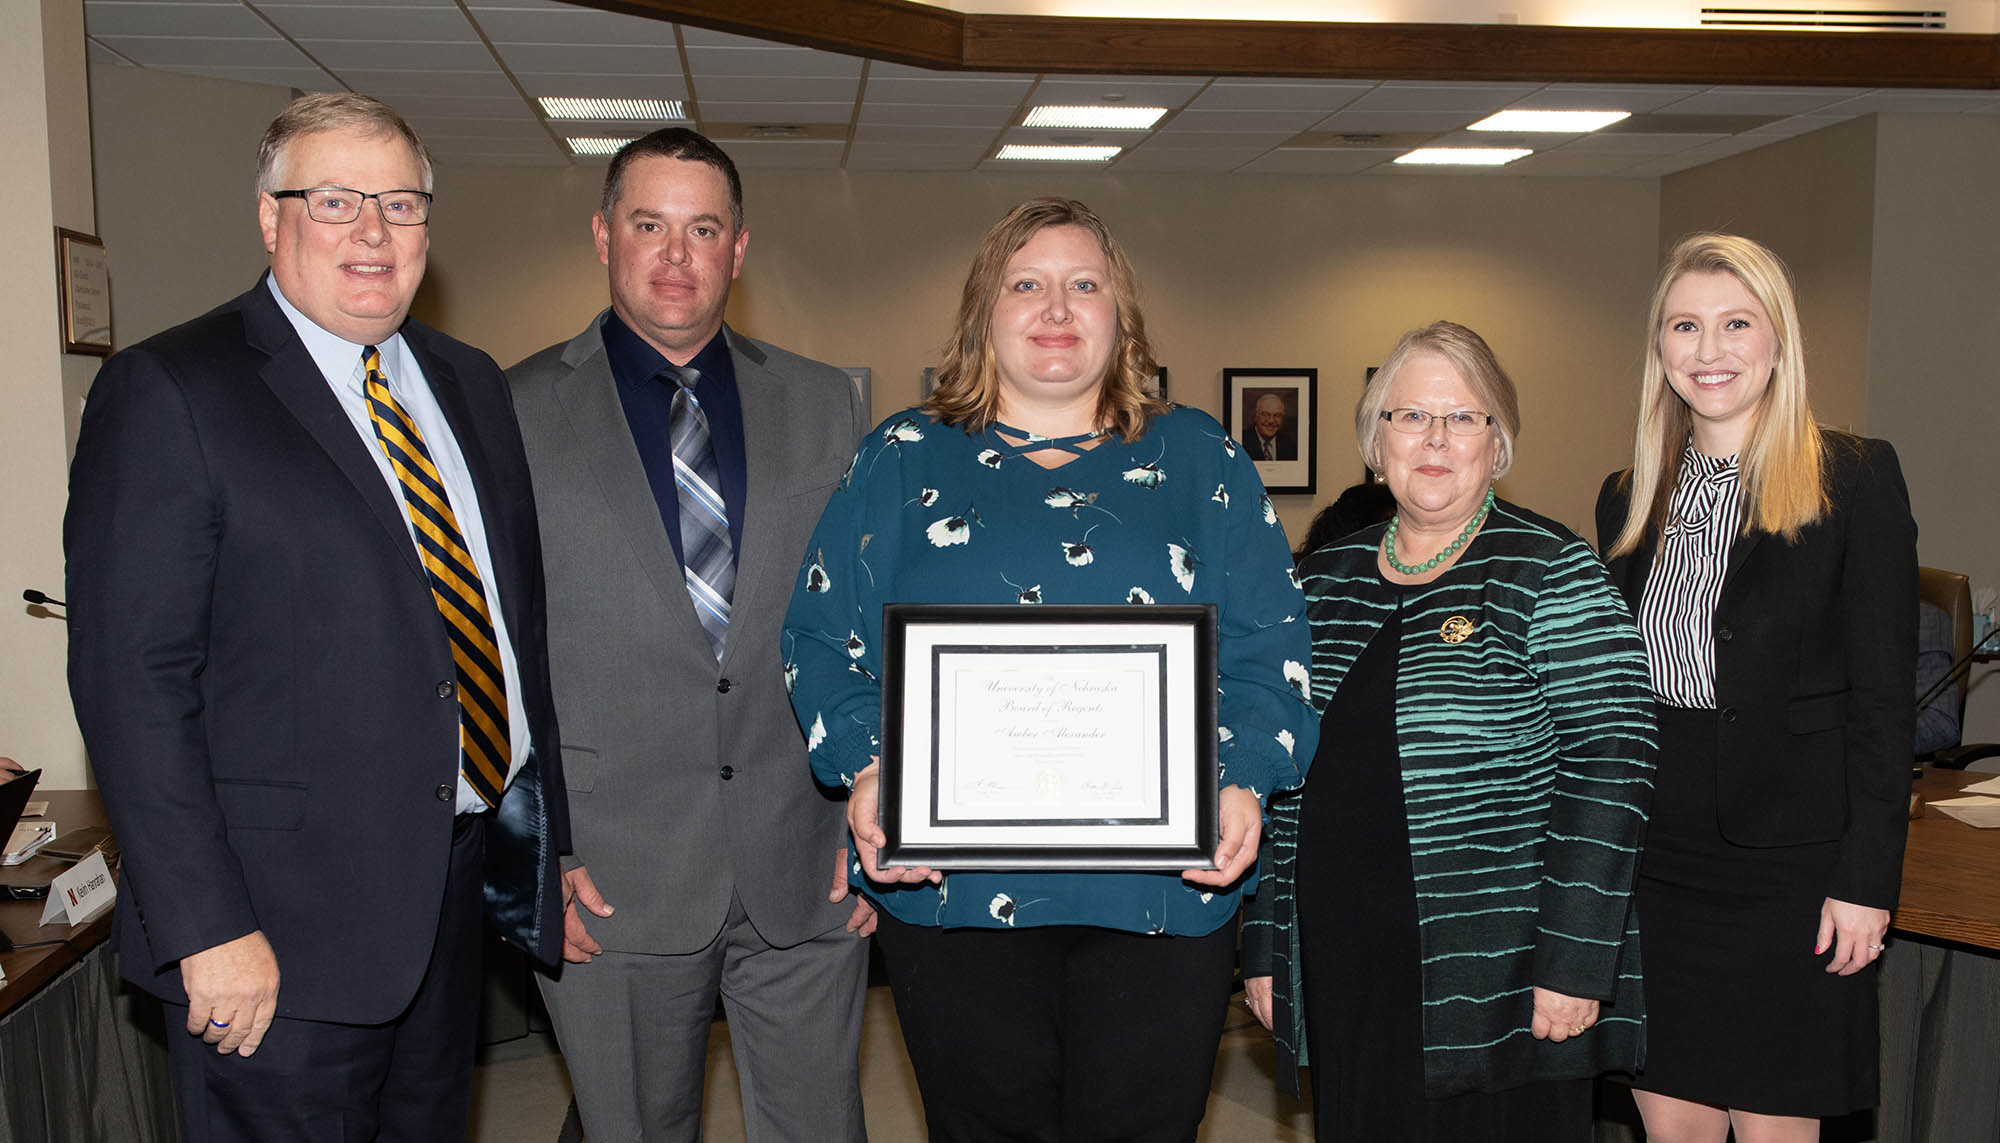 Amber Alexander, middle, was recognized with the KUDOS award at Friday's University of Nebraska Board of Regents meeting, which was attended by, from left, UNK Chancellor Doug Kristensen, Alexander's husband Nick, NU interim President Susan Fritz and Regent Elizabeth O'Connor. (Photo by Greg Nathan, NU Communications)